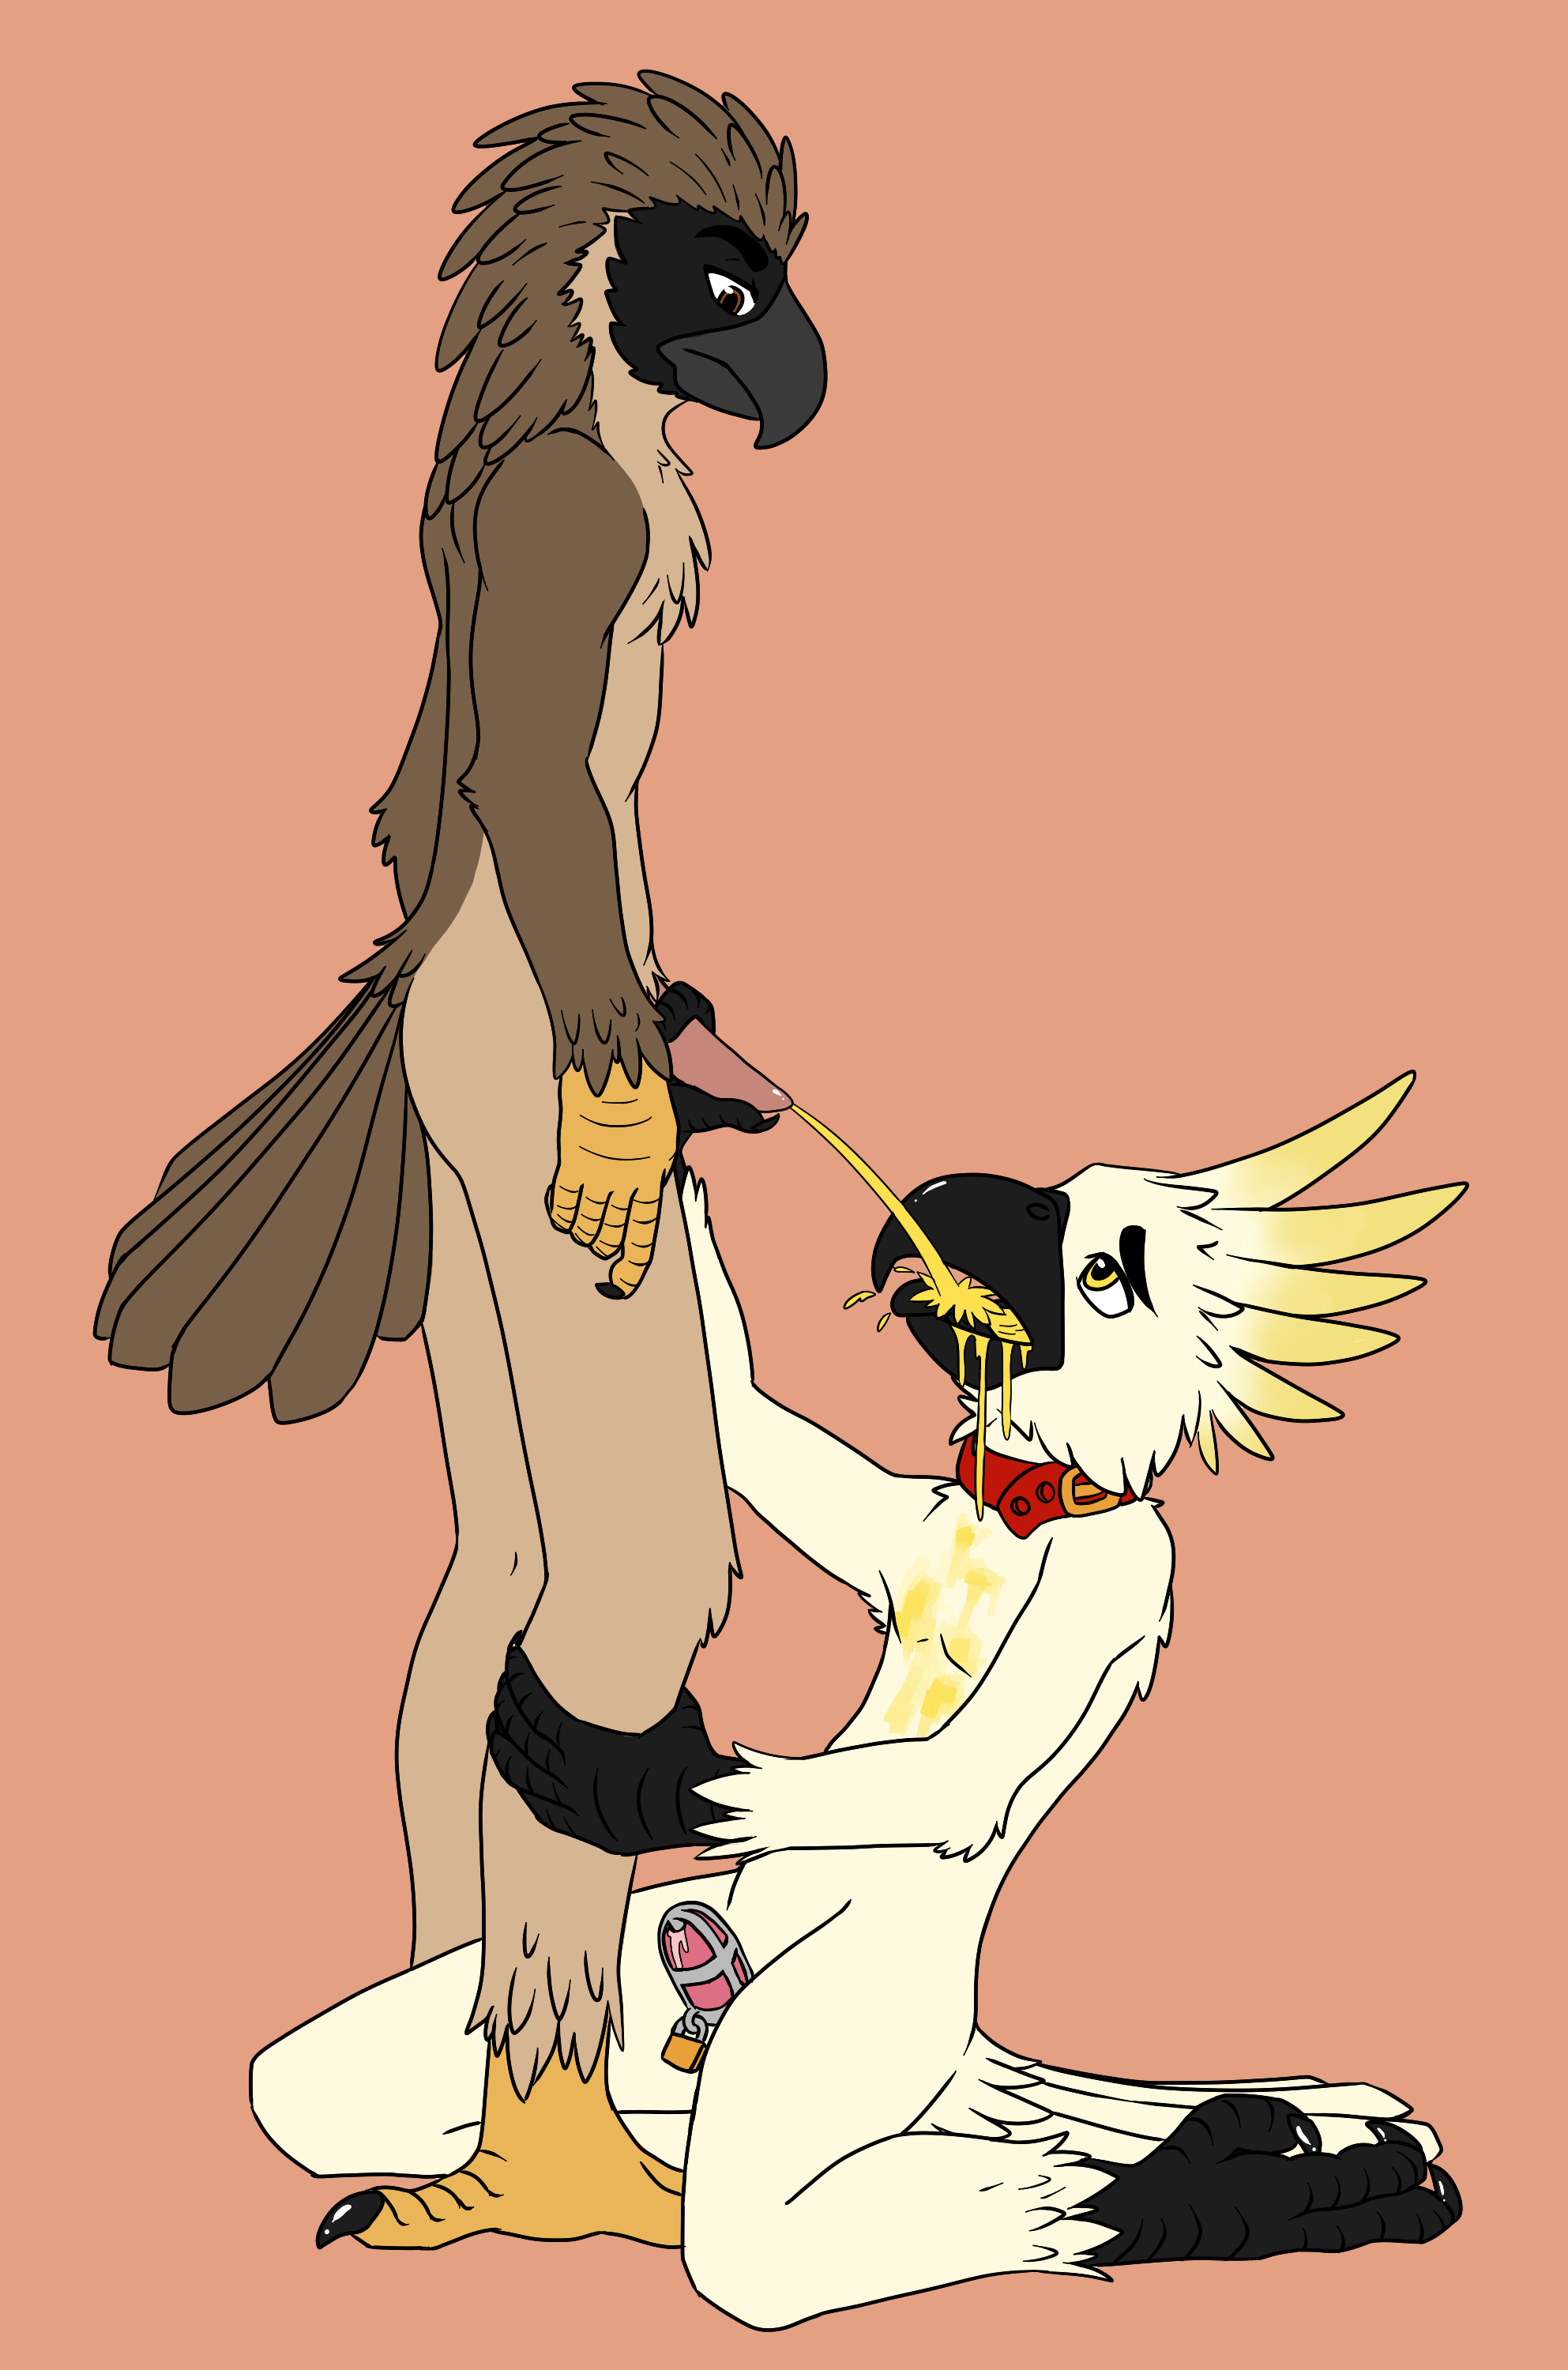 2169621_Leveretry_pirate_eagle_commish